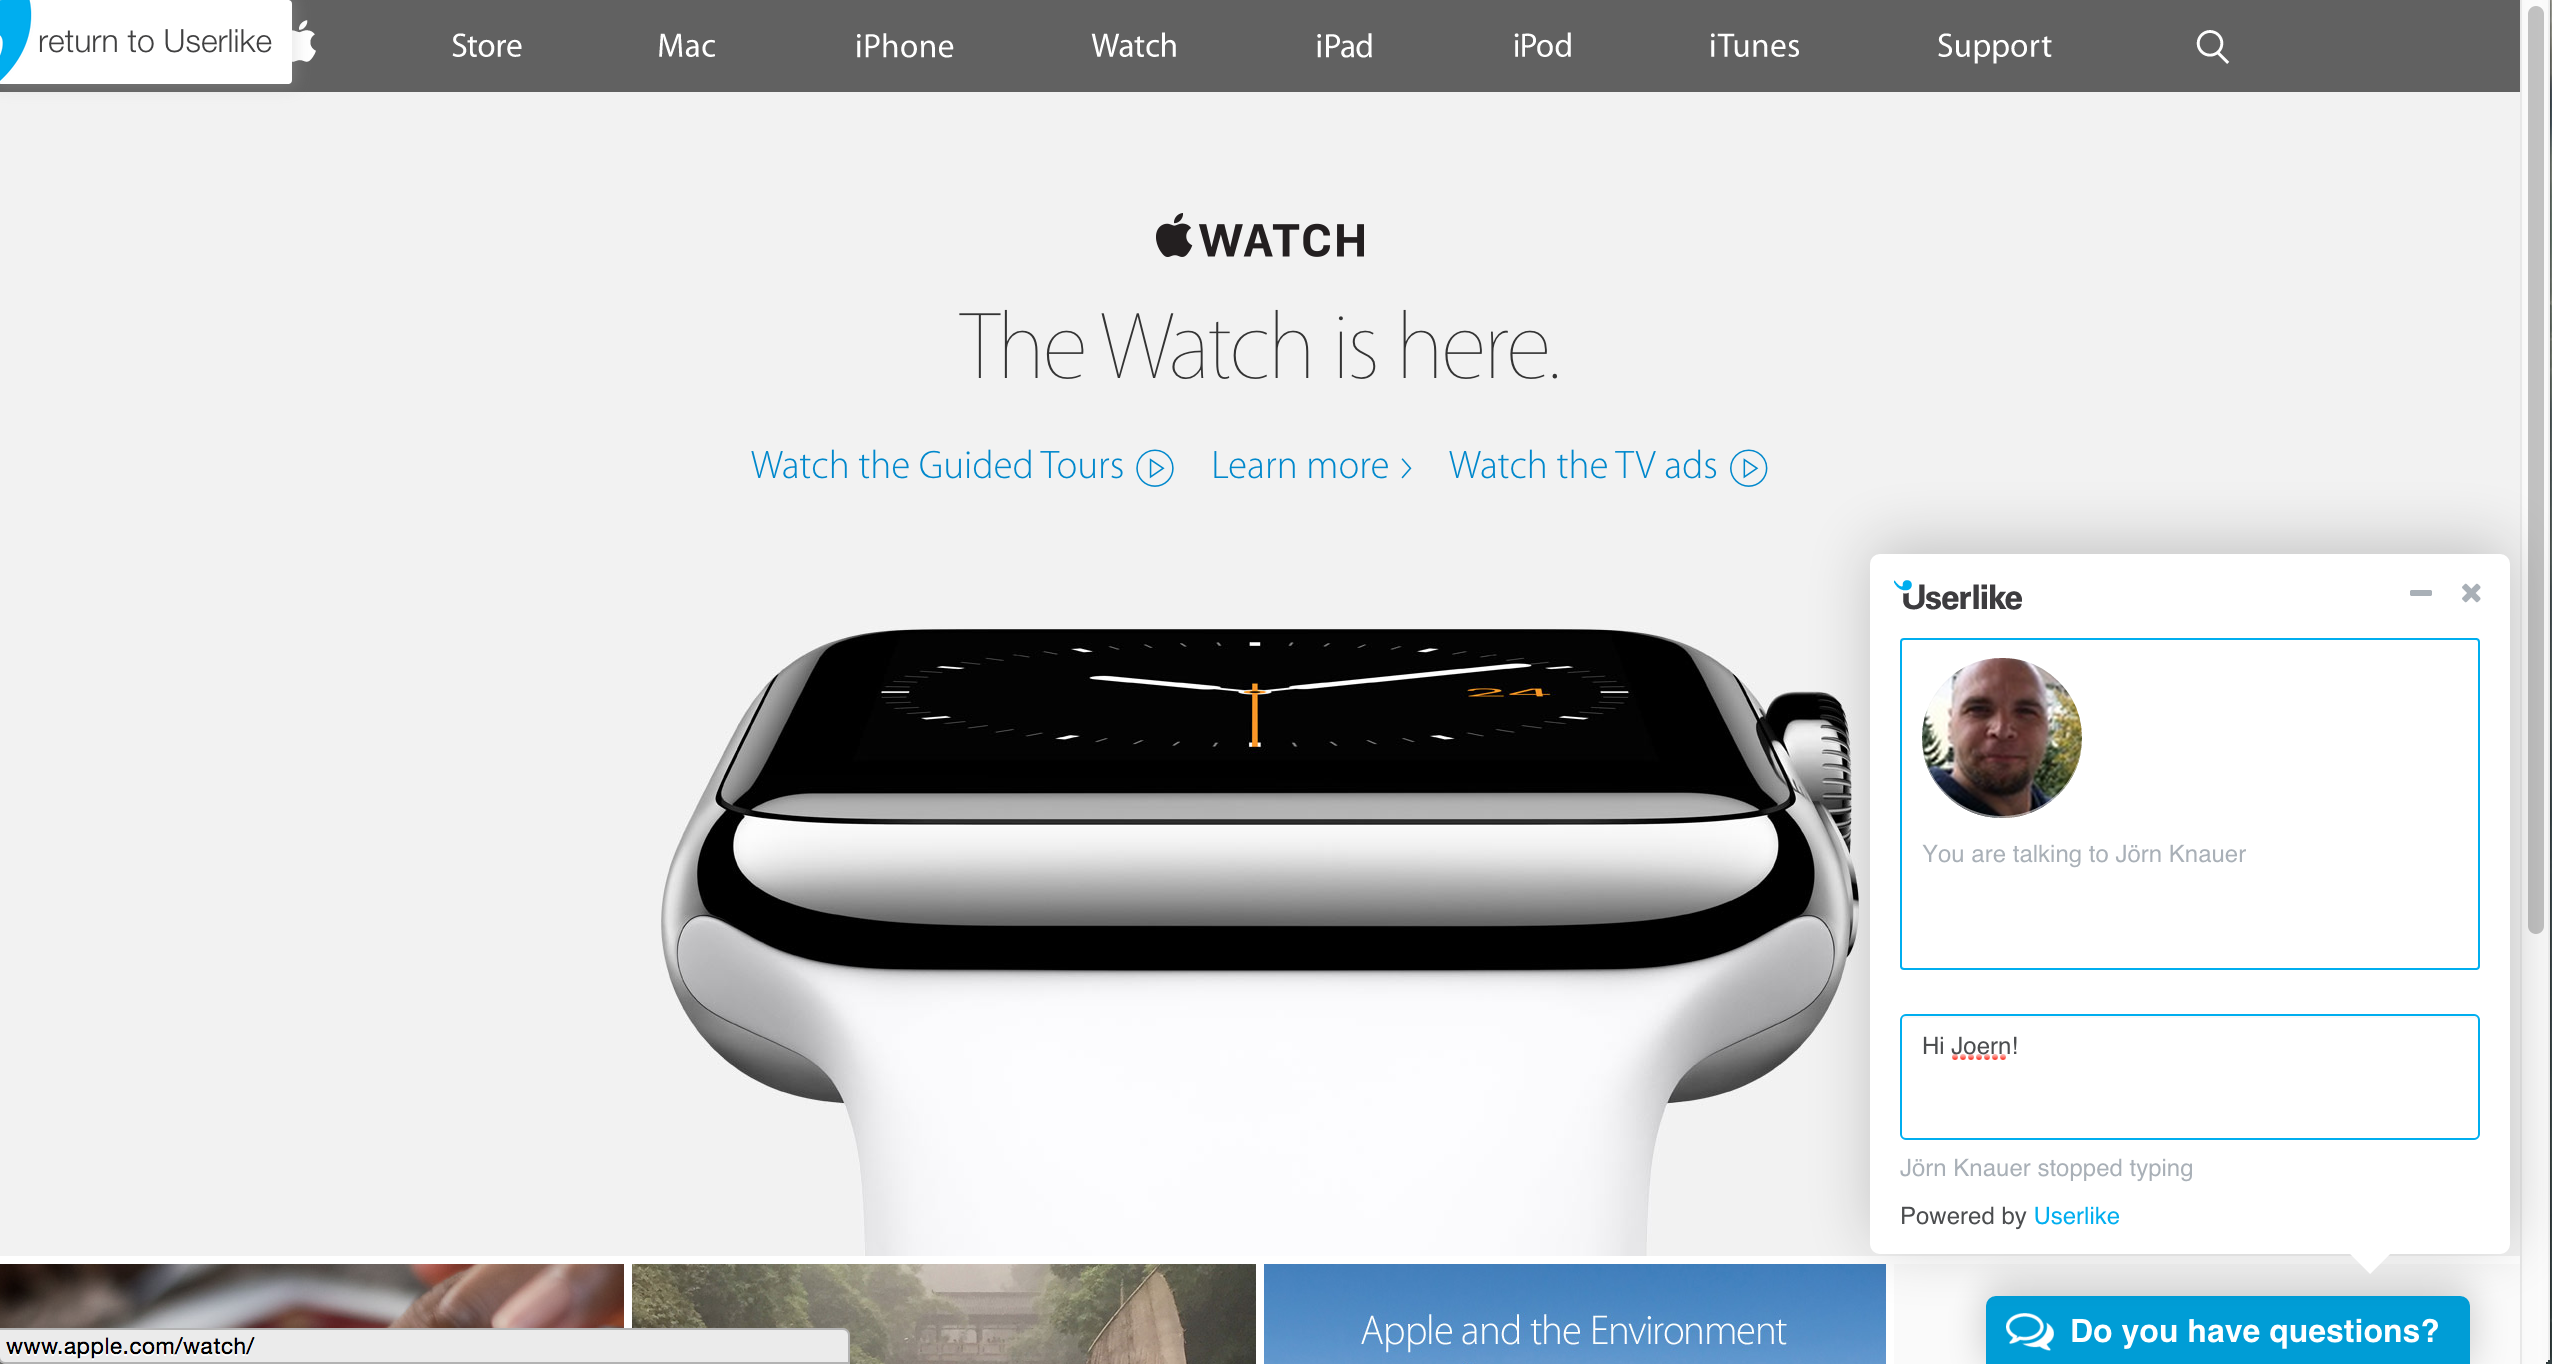 screenshot of apple watch advert page with userlike chat widget overlay